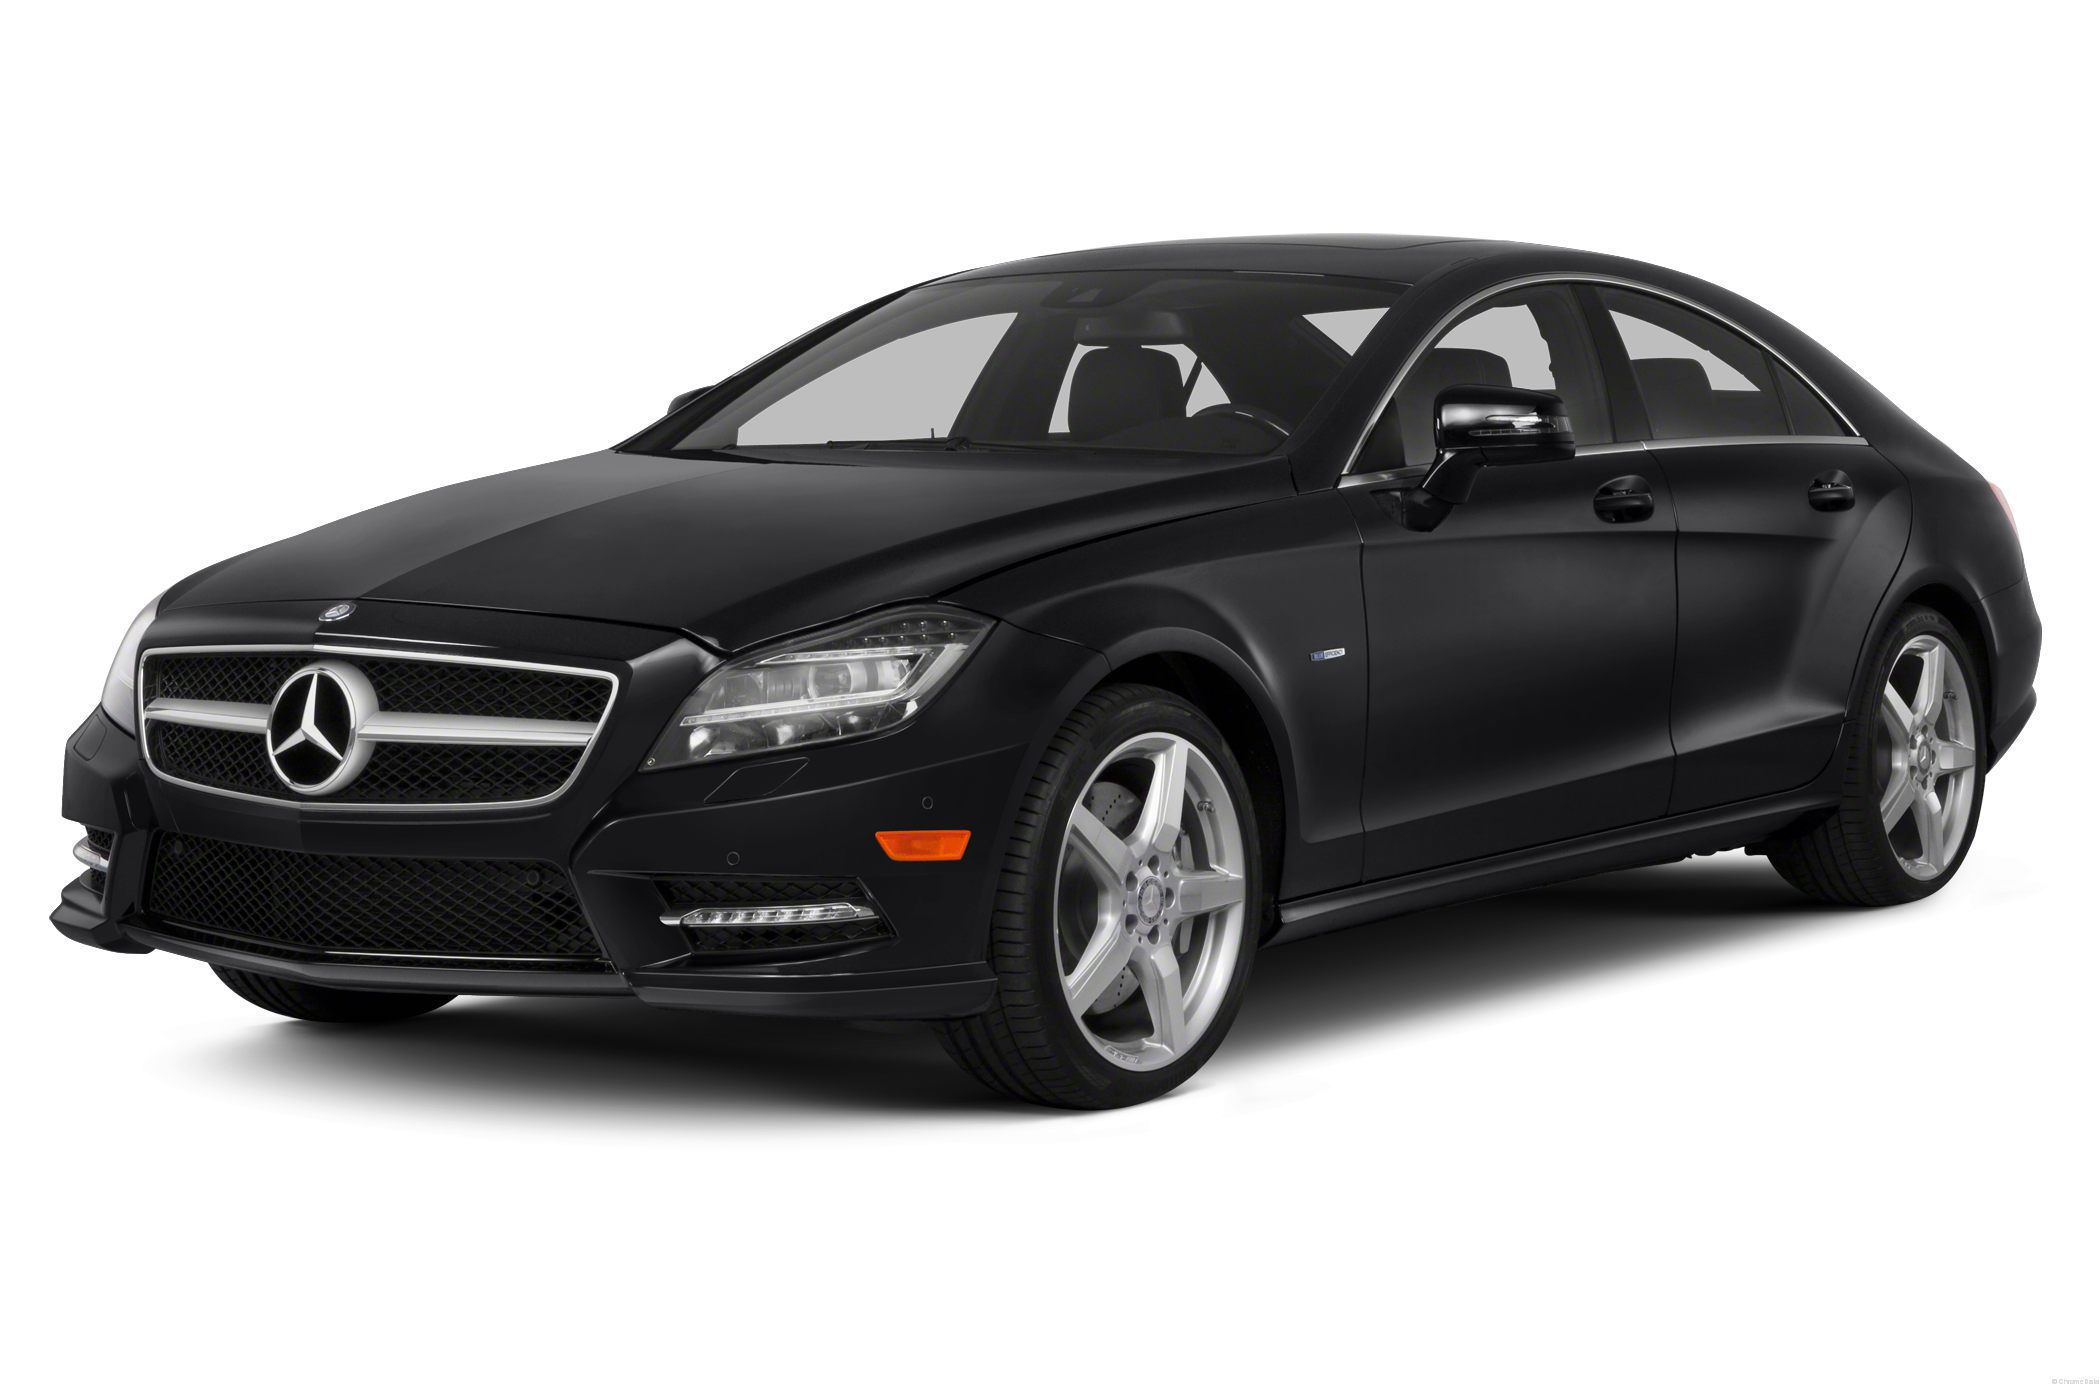 mercedes benz cls class wallpapers images photos pictures backgrounds. Black Bedroom Furniture Sets. Home Design Ideas